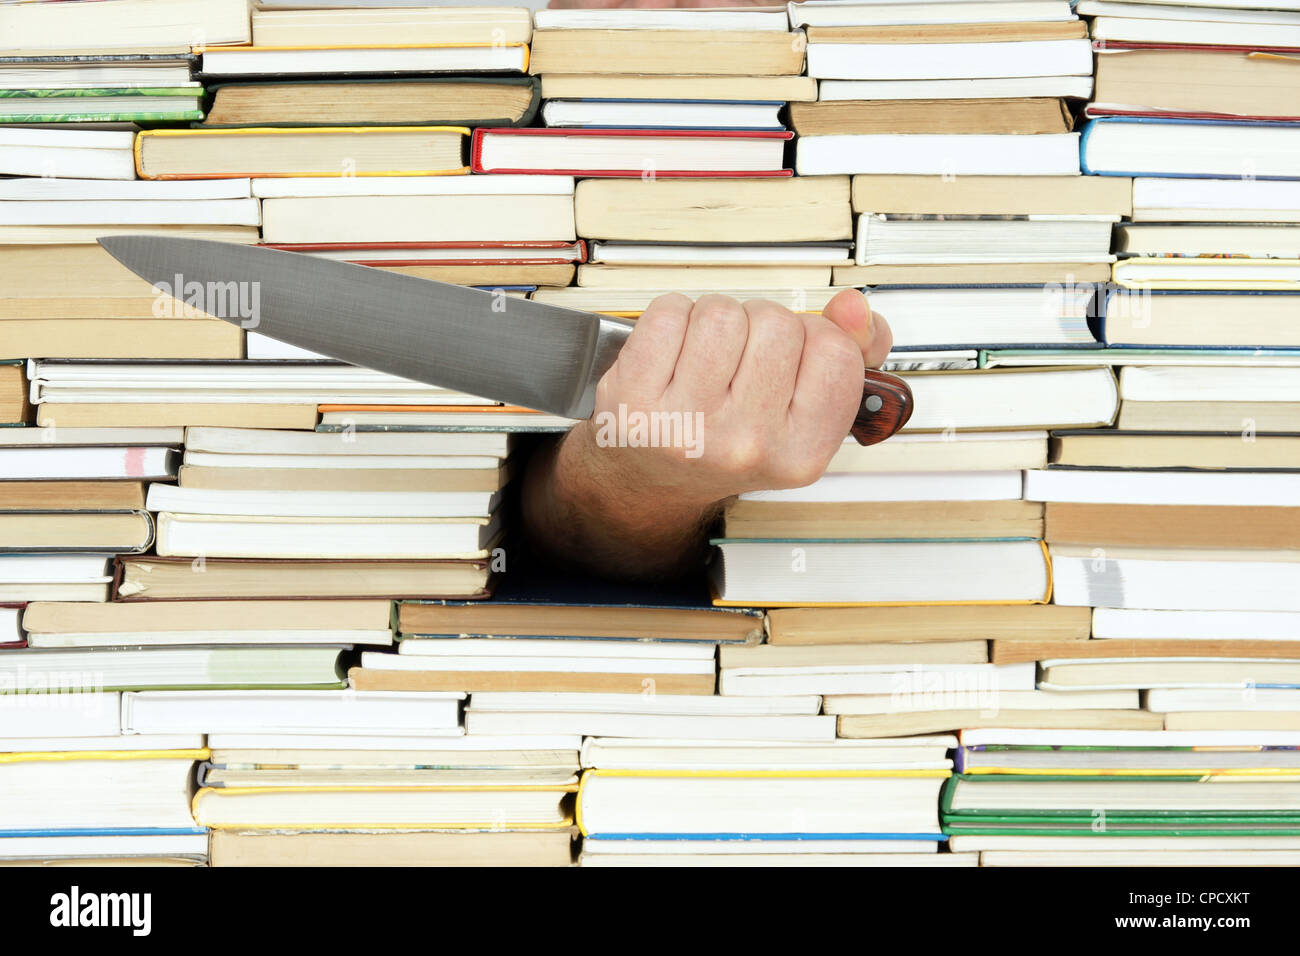 big kitchen knife in hand on background of books - Stock Image